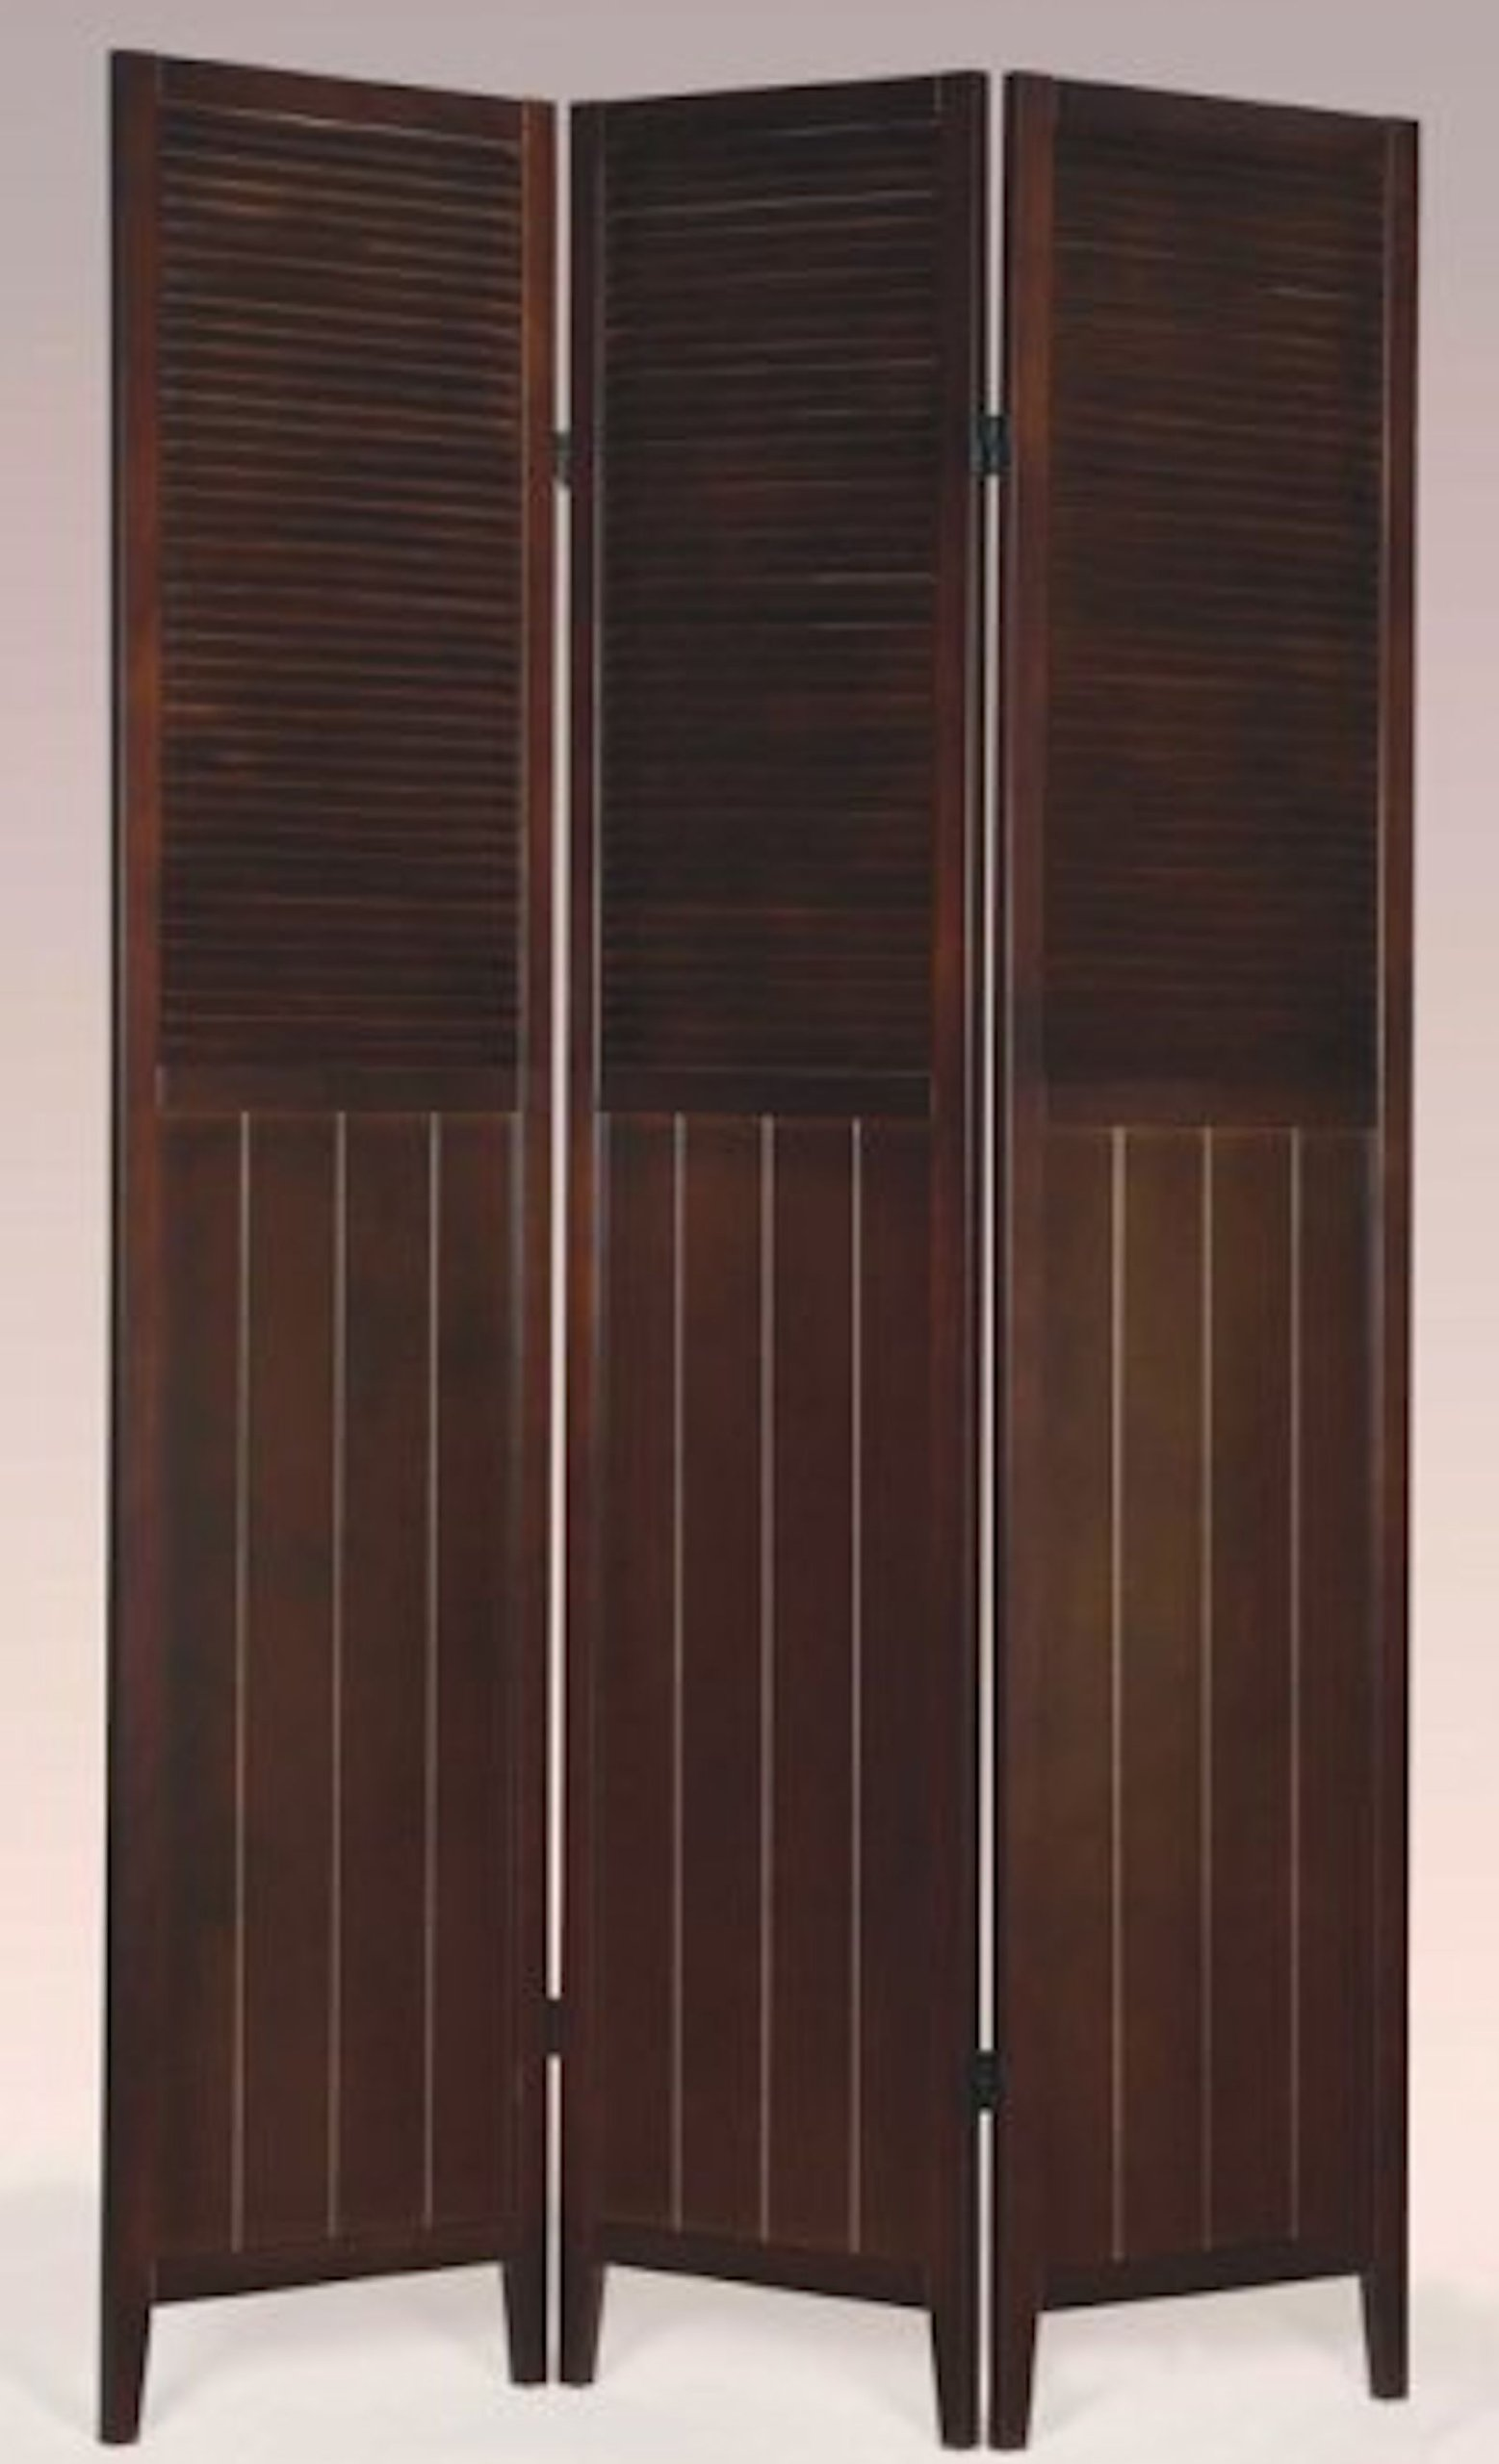 Legacy Decor 3 Panel Wooden Blind Screen, Dividers (Espresso)